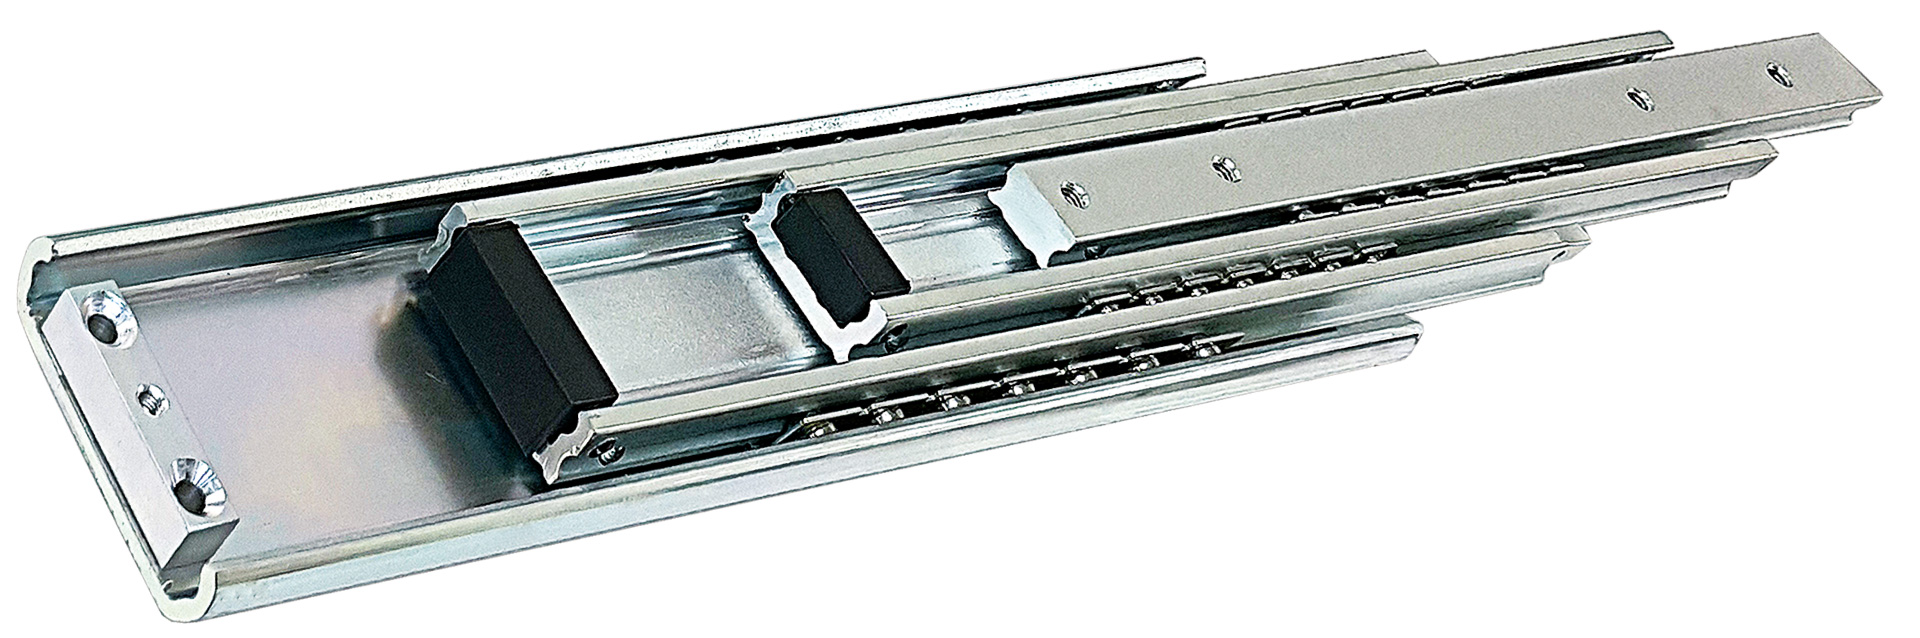 Extra Heavy Duty Drawer Slides Heavy Duty Rail Slides Heavy Duty Slide Heavy